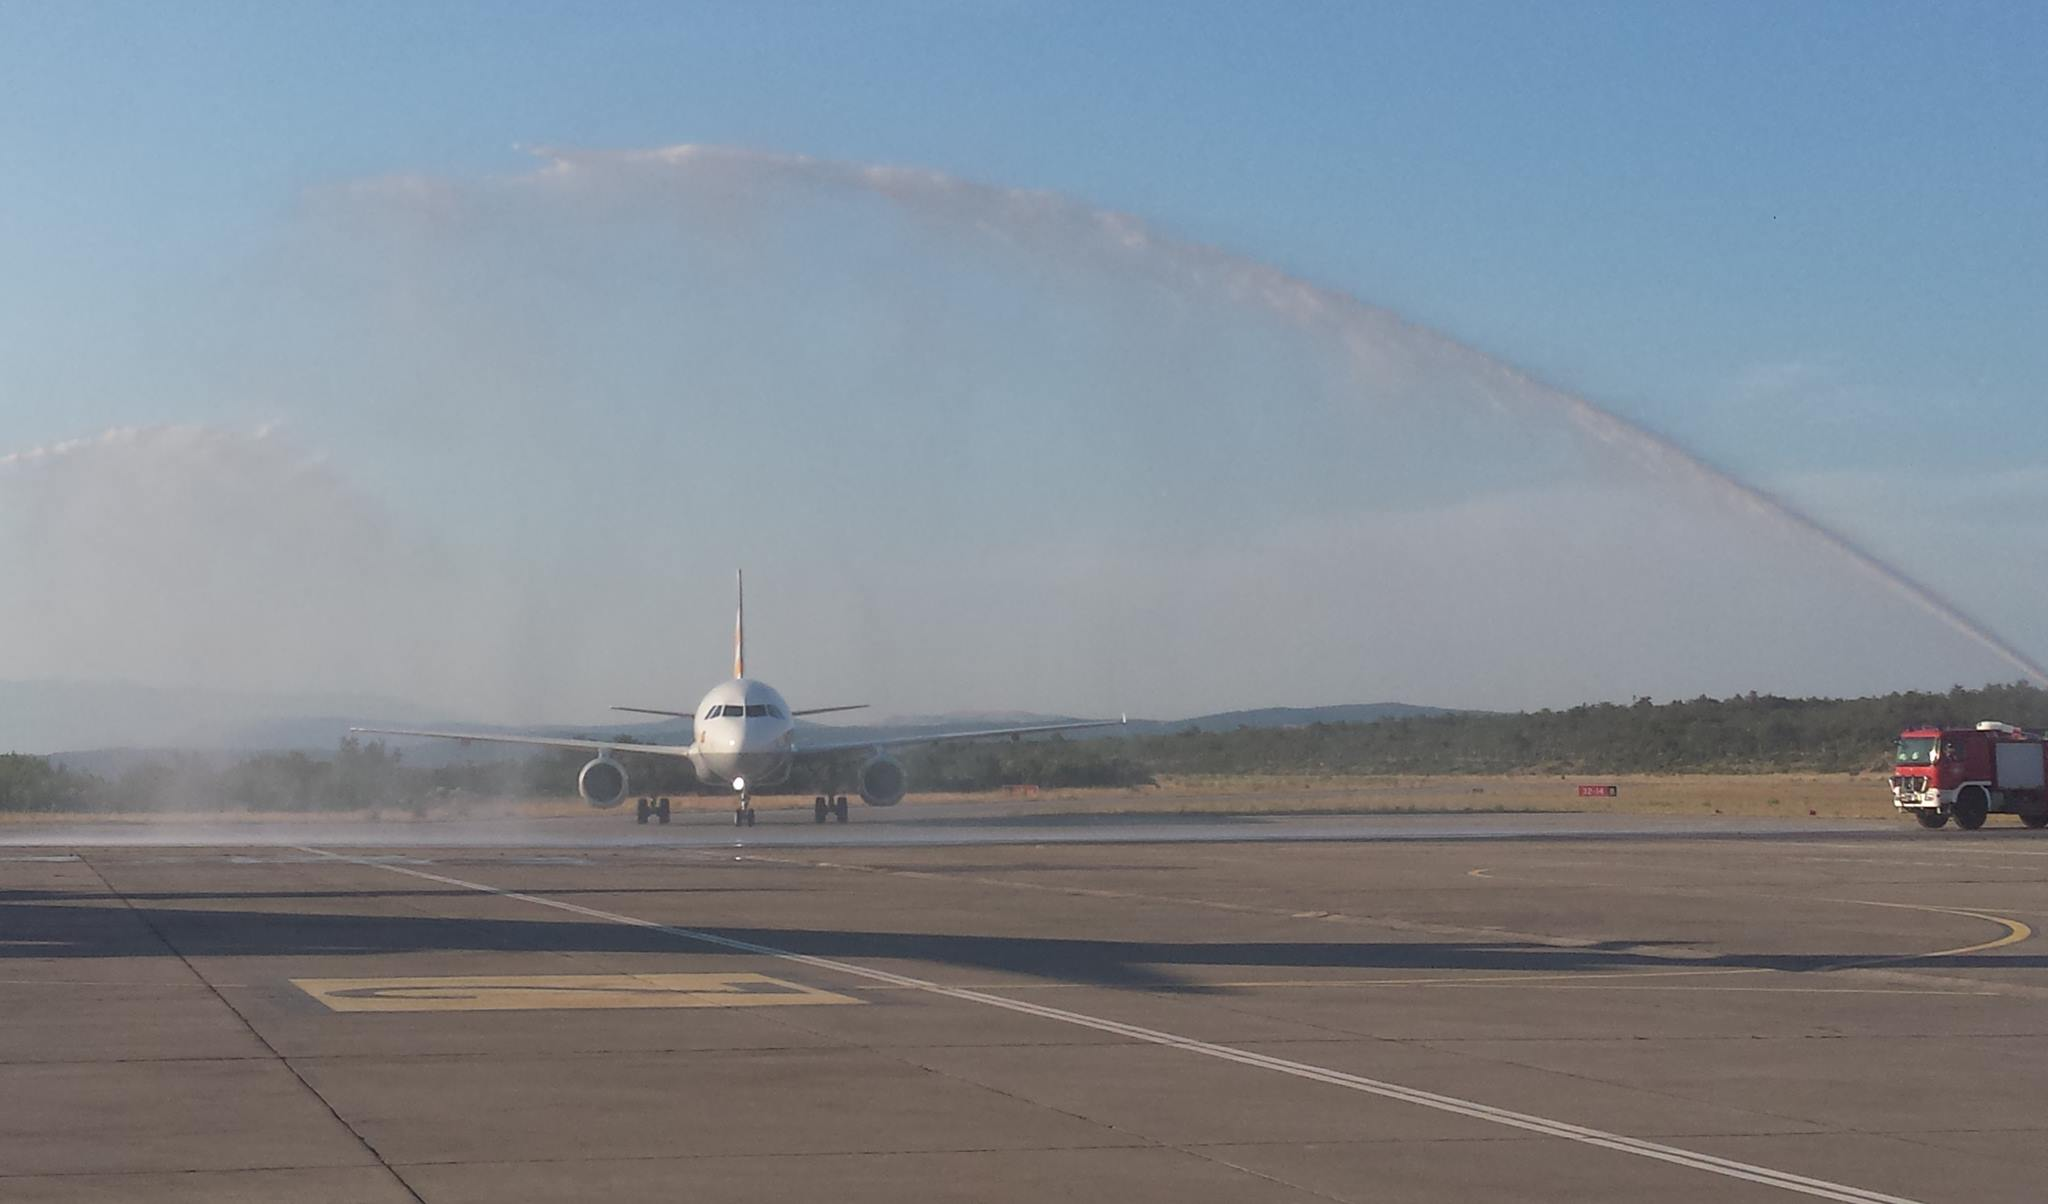 First flight from Hannover welcomed with water shower!